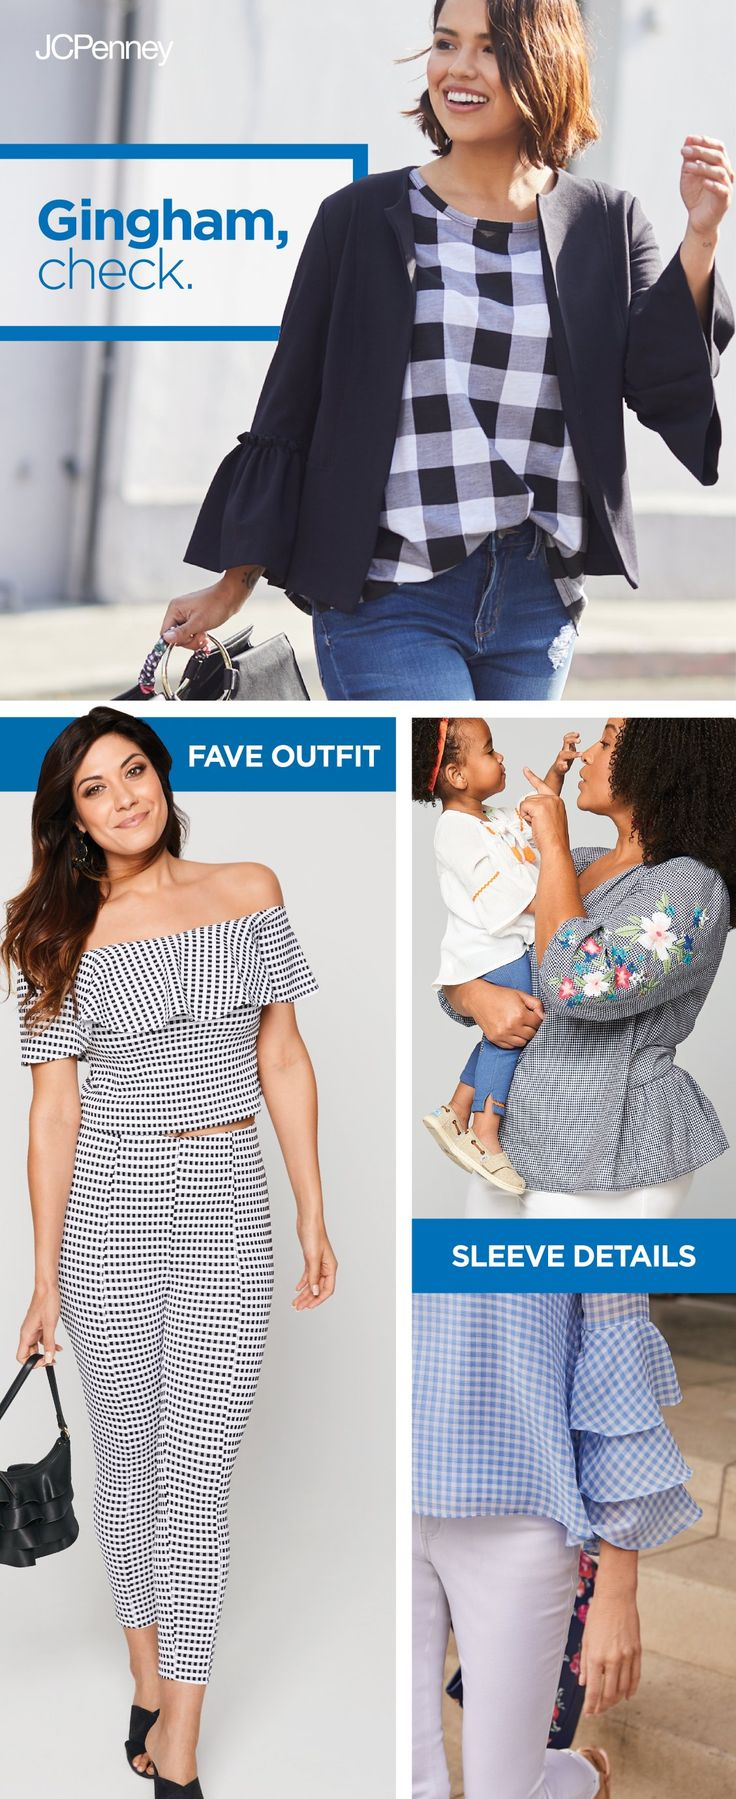 There's just one pattern that you have to have this season: gingham. While plaid and polka dots still have their place in your closet, gingham is having a fashion moment. Gingham tops are best paired with destructed denim, while a black-and-white print matches well with white pants. Warm up to the look with simple extras, like gingham slides or a print purse. Find gingham and more at JCPenney.